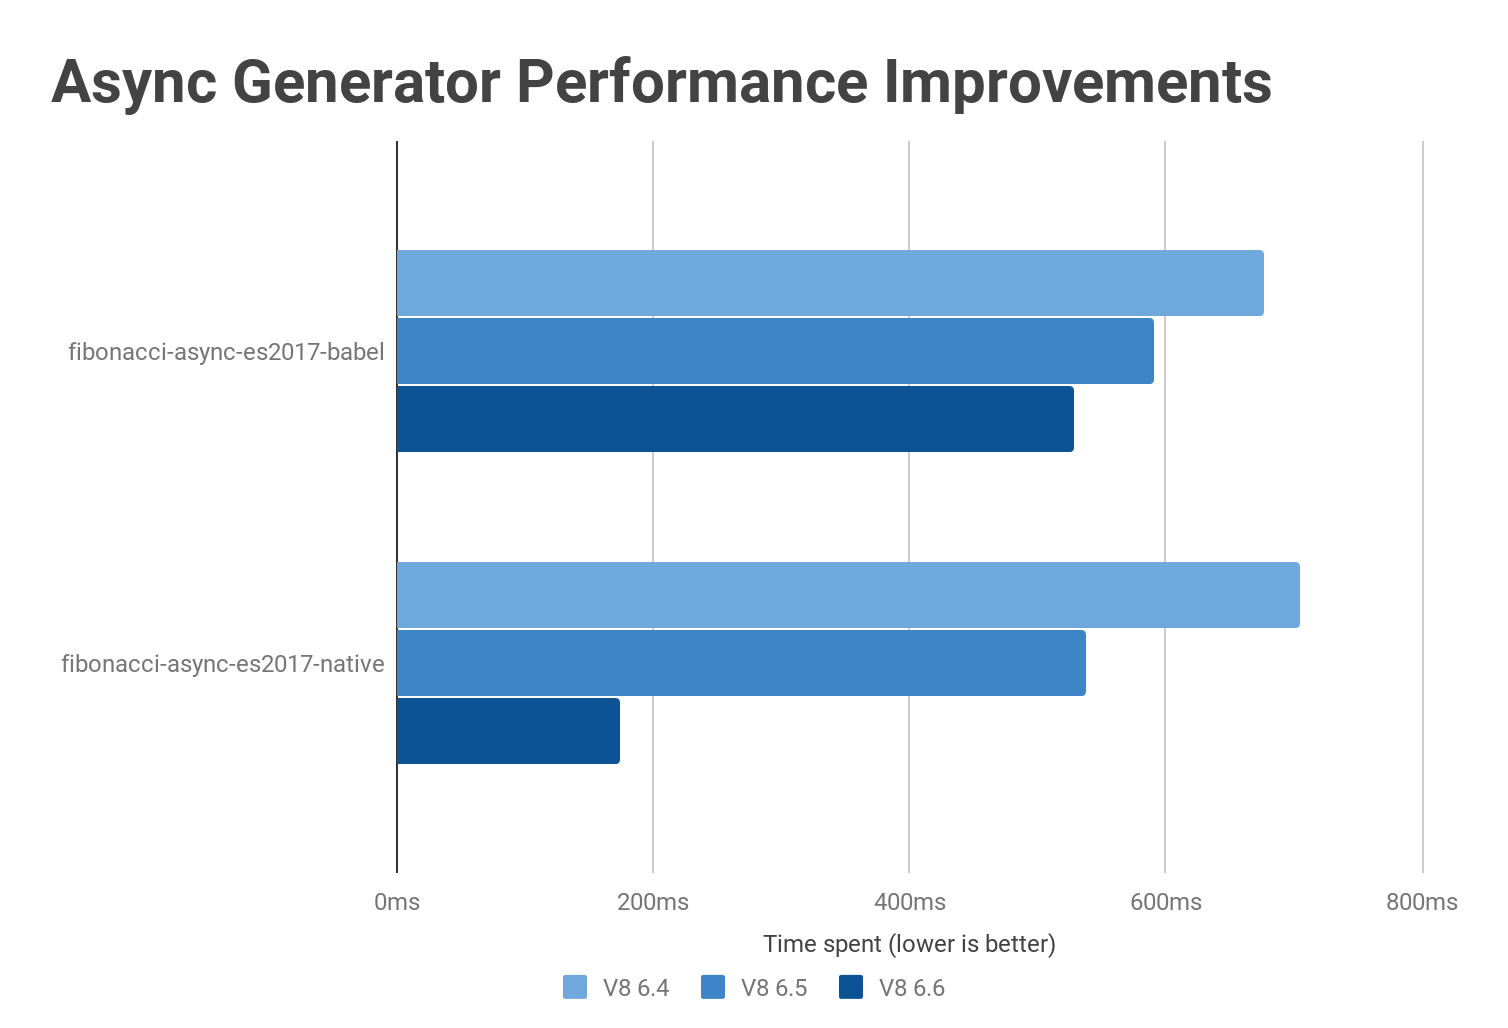 Async generators performance improvements